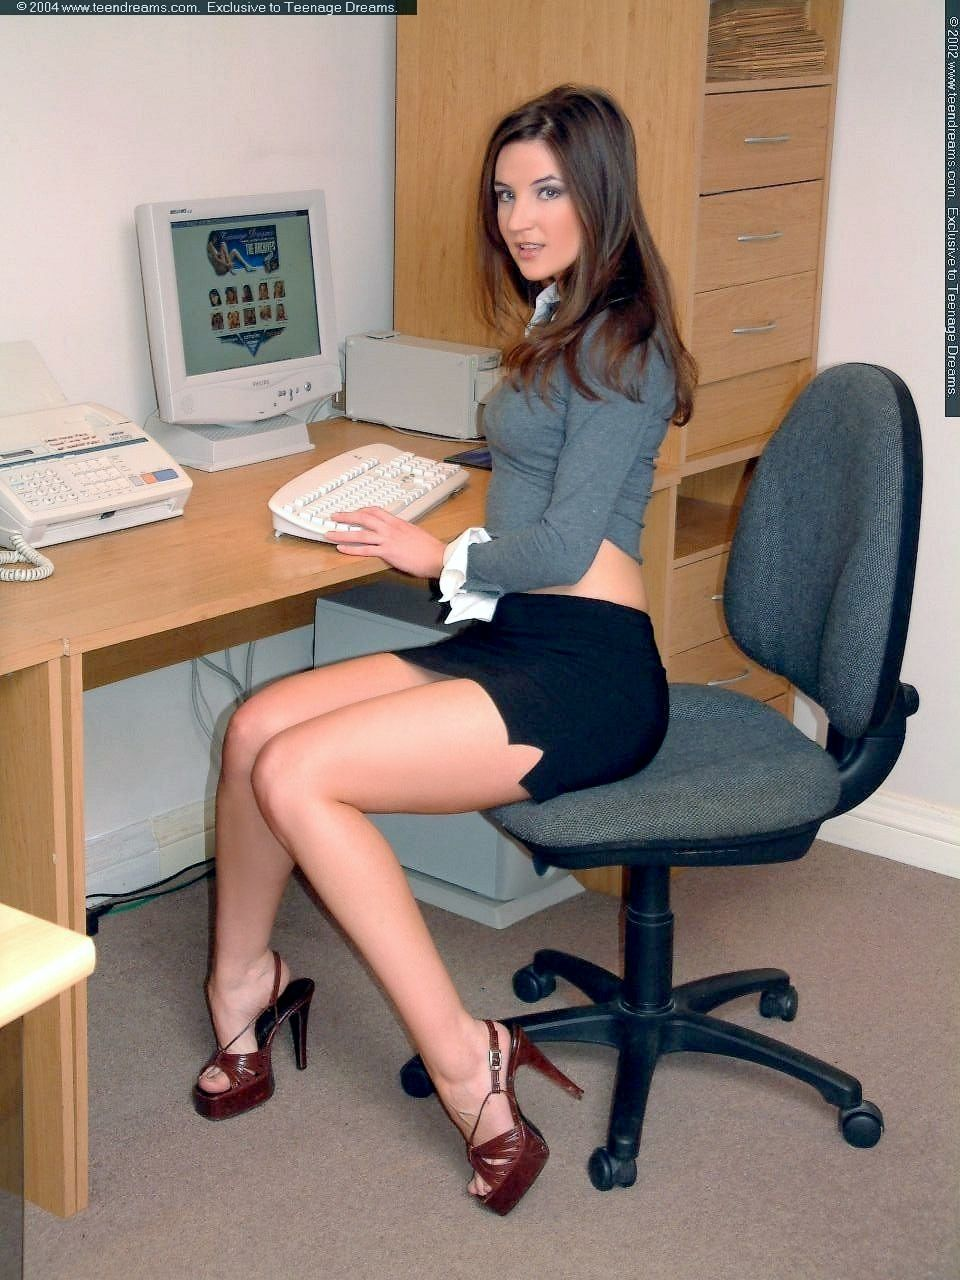 Sexy office girls pictures-8505